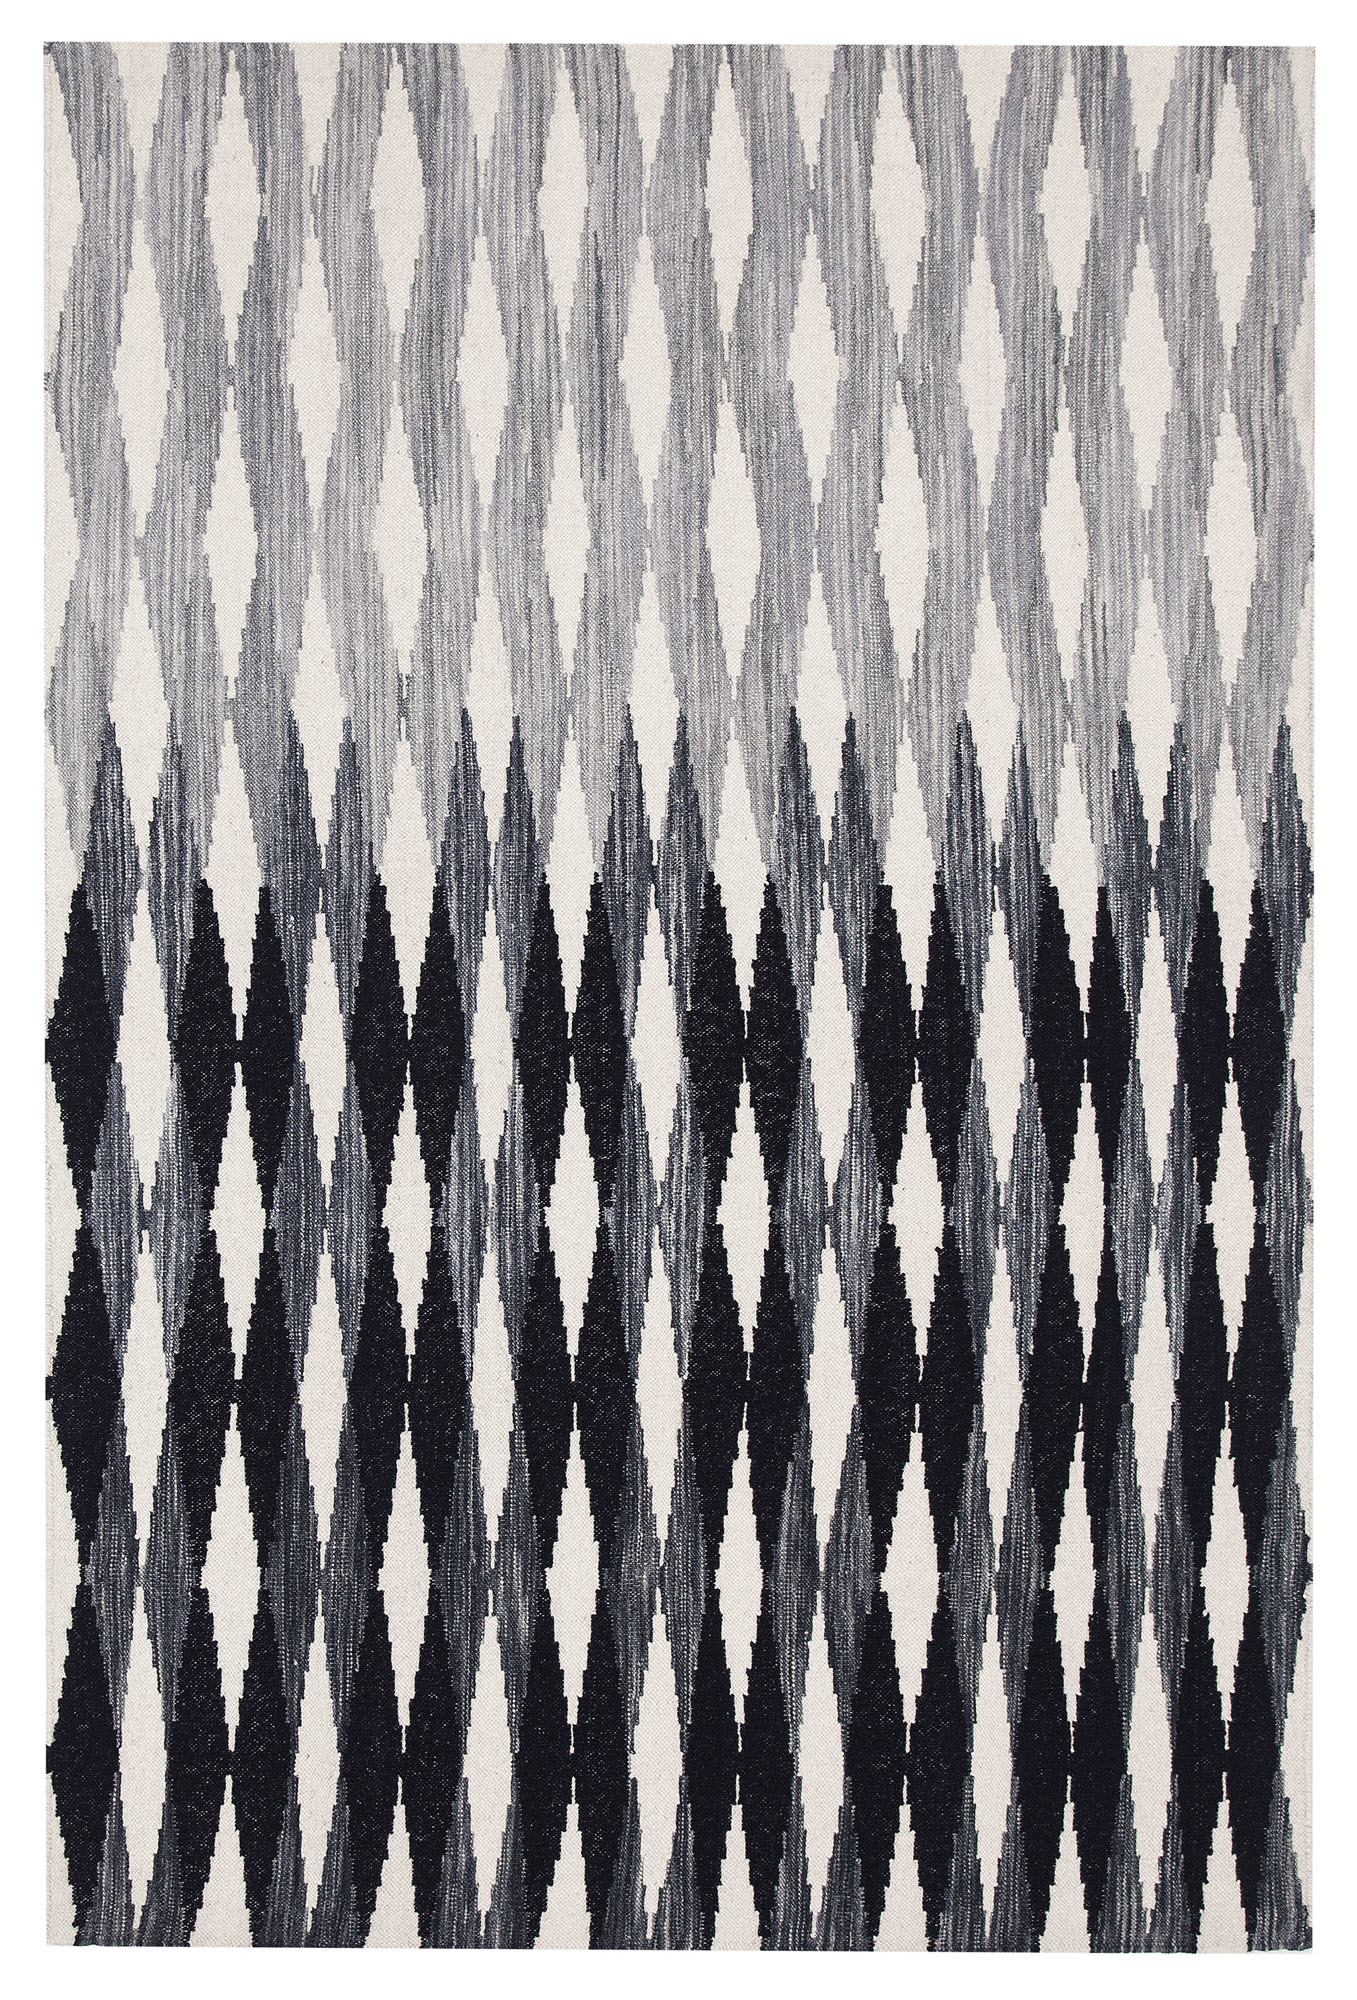 NEW-Lennie-Black-amp-Blue-Hand-Woven-Wool-Reversible-Rug-Network-Rugs